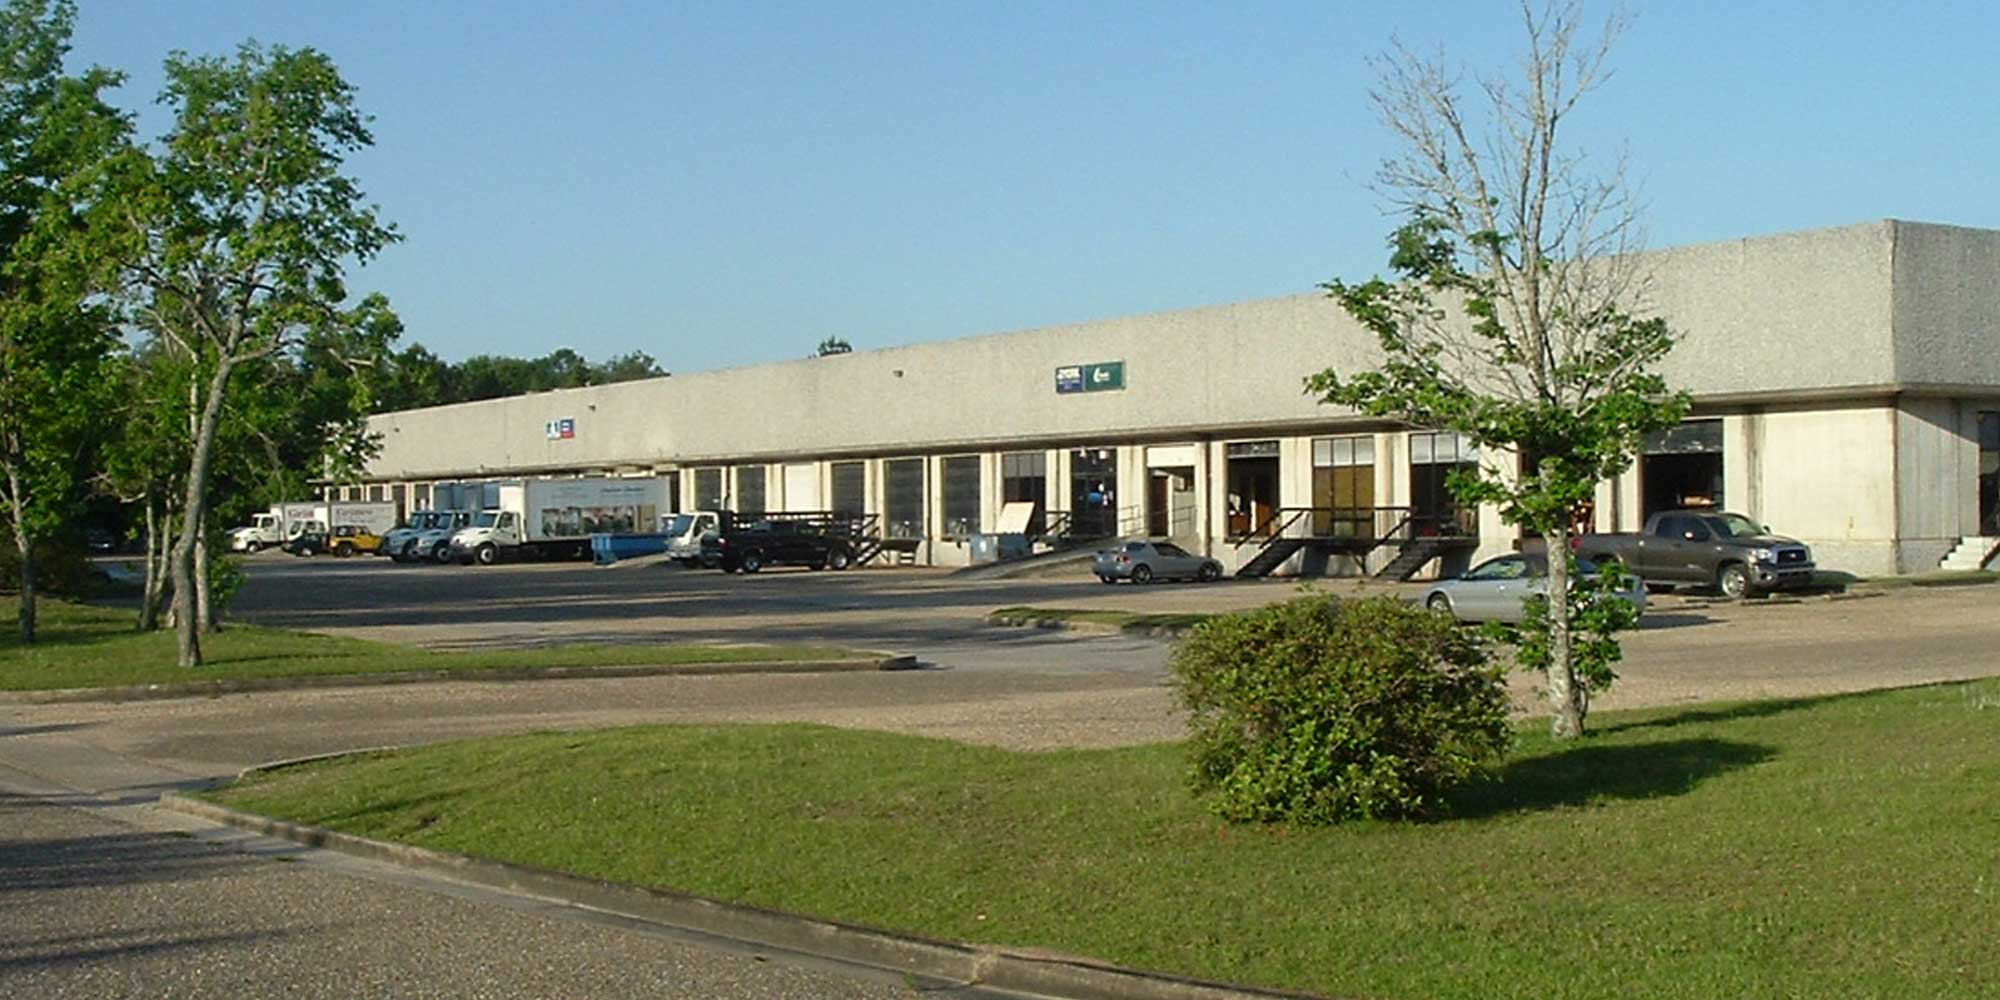 981 Corporate Drive South - WAREHOUSEA 63,000± square foot mulit-tenant distribution warehouse located at the intersection of Interstate 65 and Highway 98 (Moffett Road) in Central Business Park. The building is 100% occupied.Tenant: E-Go Bike